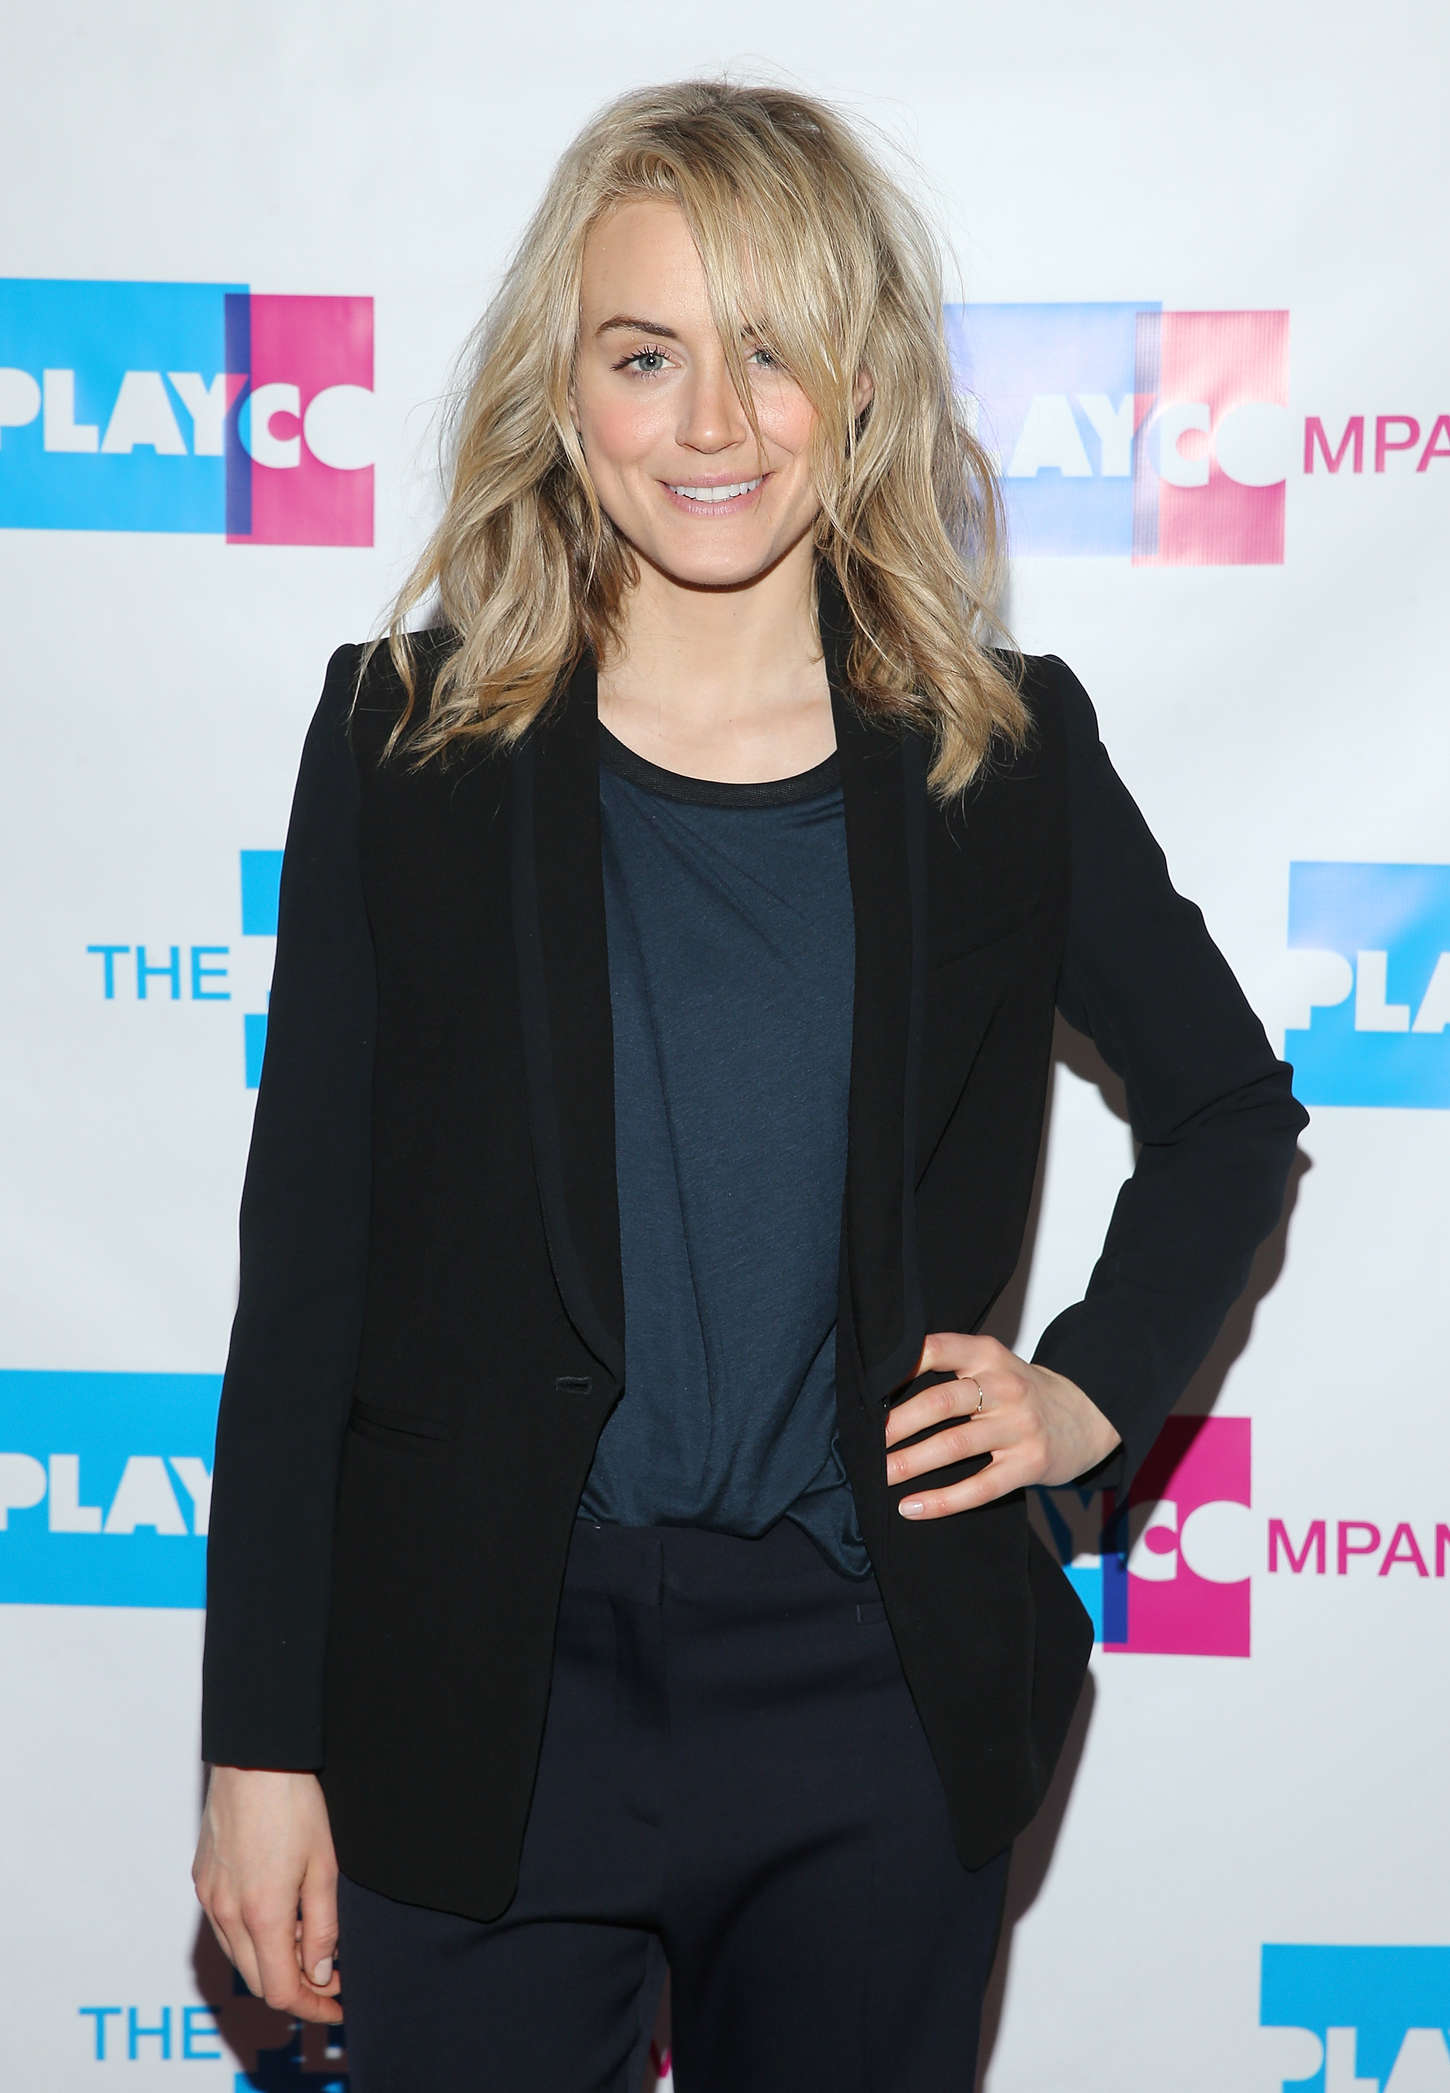 Taylor Schilling Play Companys Cabaret Gourmet in New York